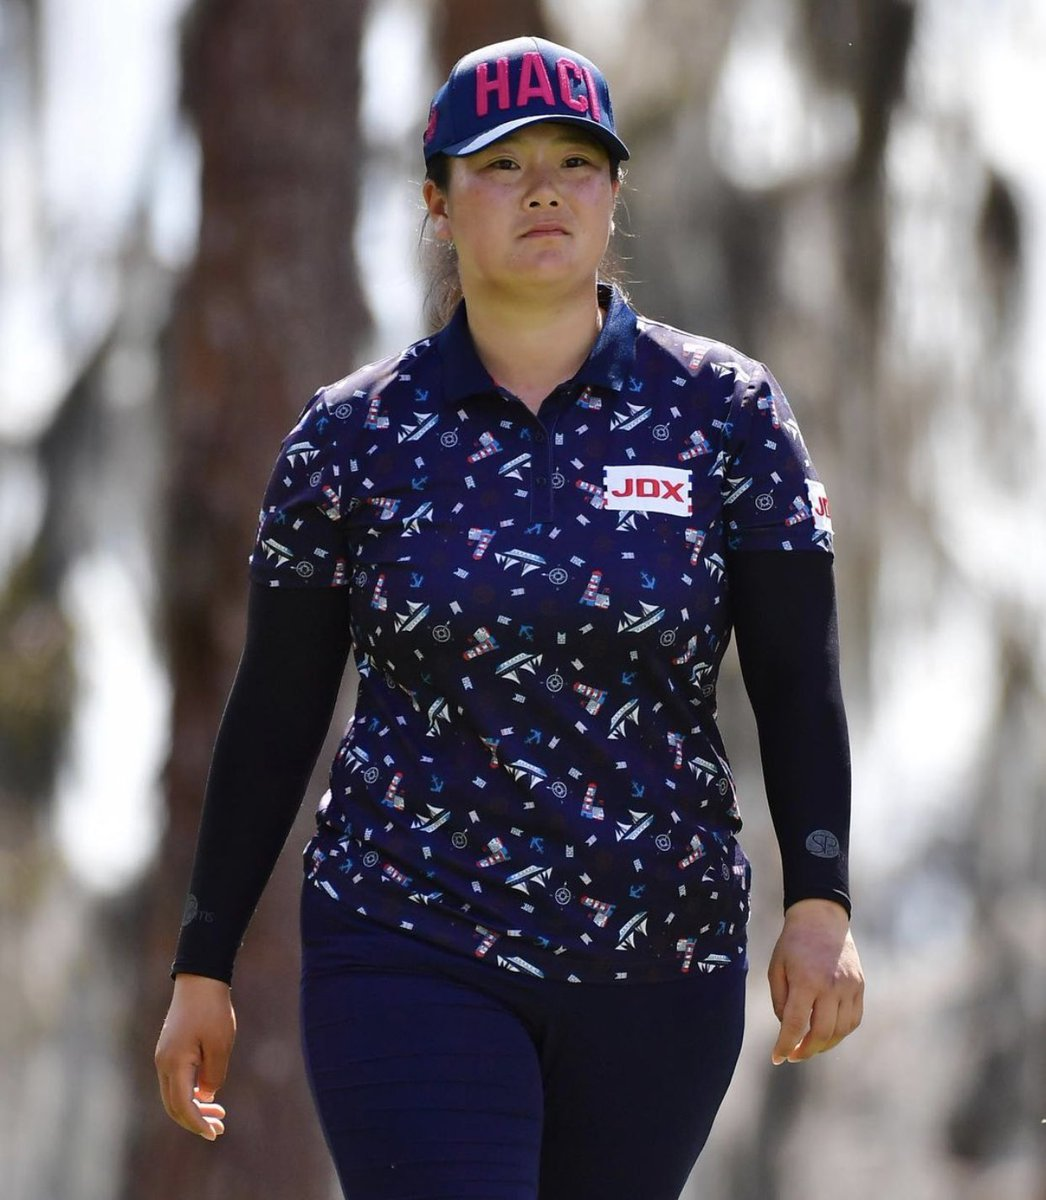 So proud to welcome @LPGA rising star @angelyinlol to the @modestgolf family.   At just 22 Angel has achieved so much in her short career already, competing in two @SolheimCupUSA teams & winning on the @LETgolf at just 17 years old.   Excited to work with you Angel. 📄✍🏼